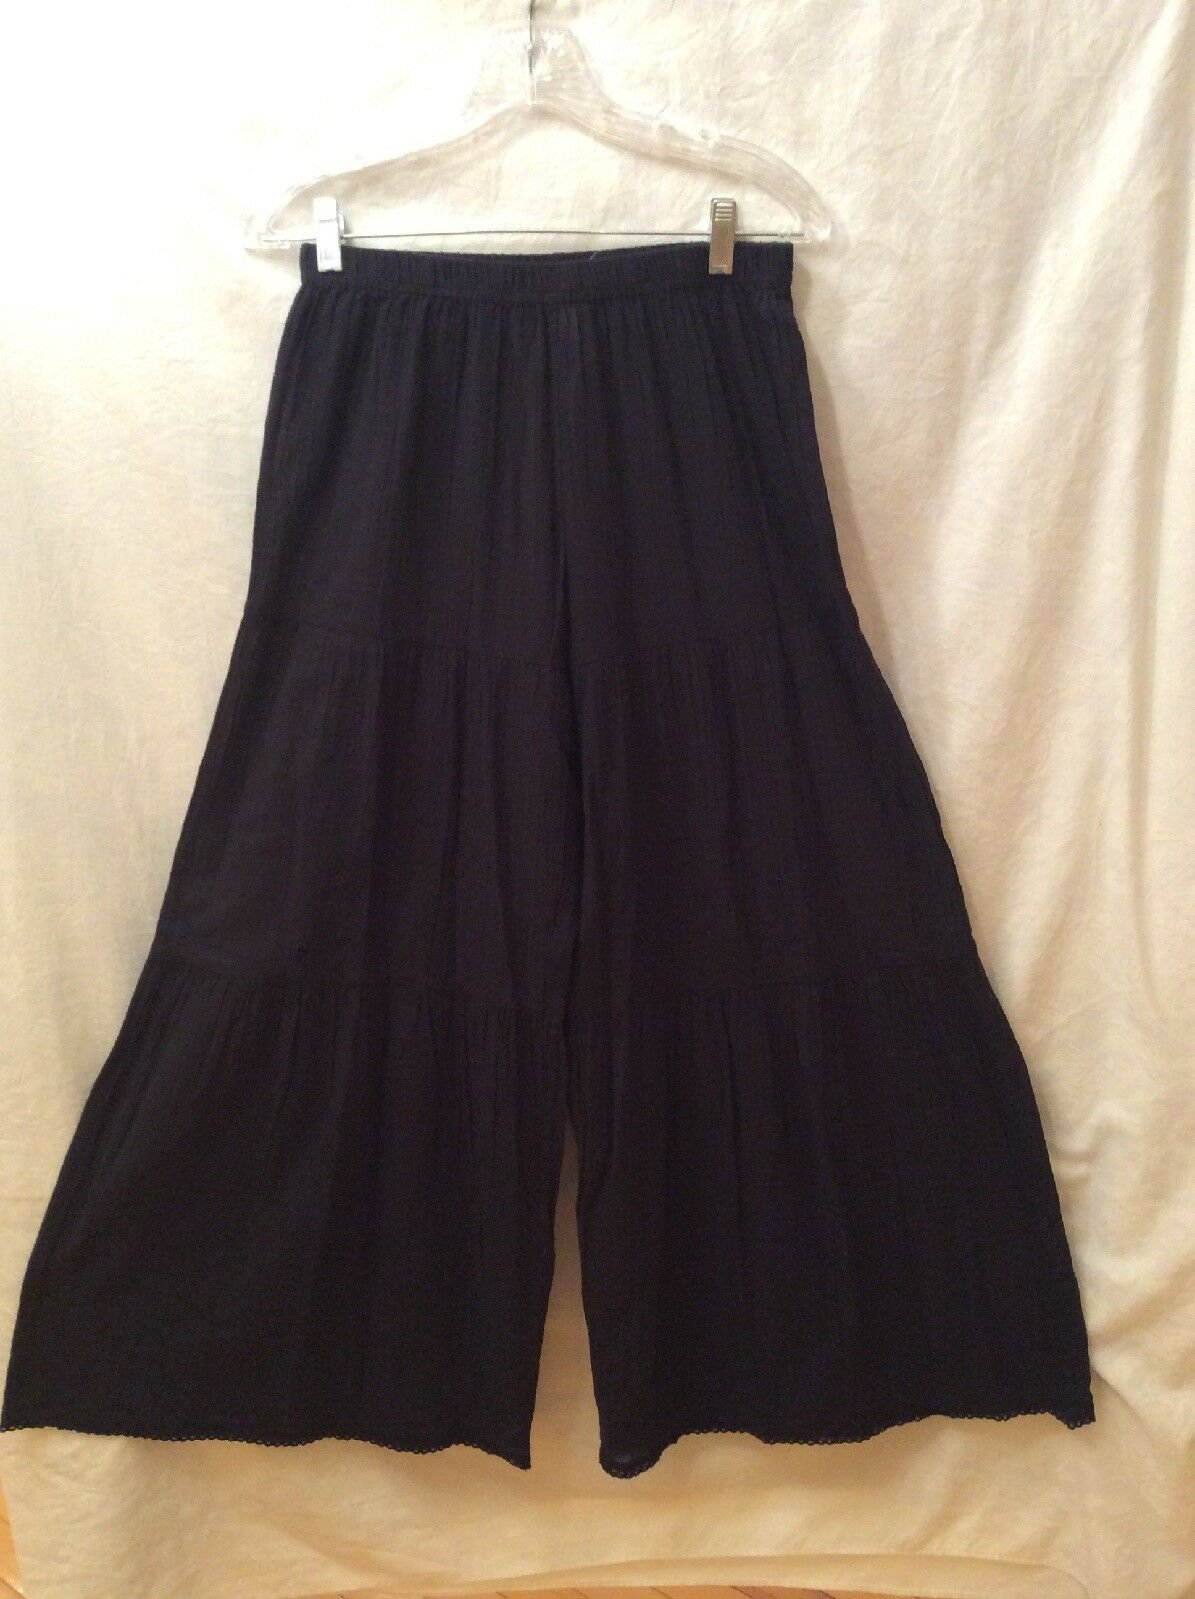 Calzedonia cotton trousers, size S